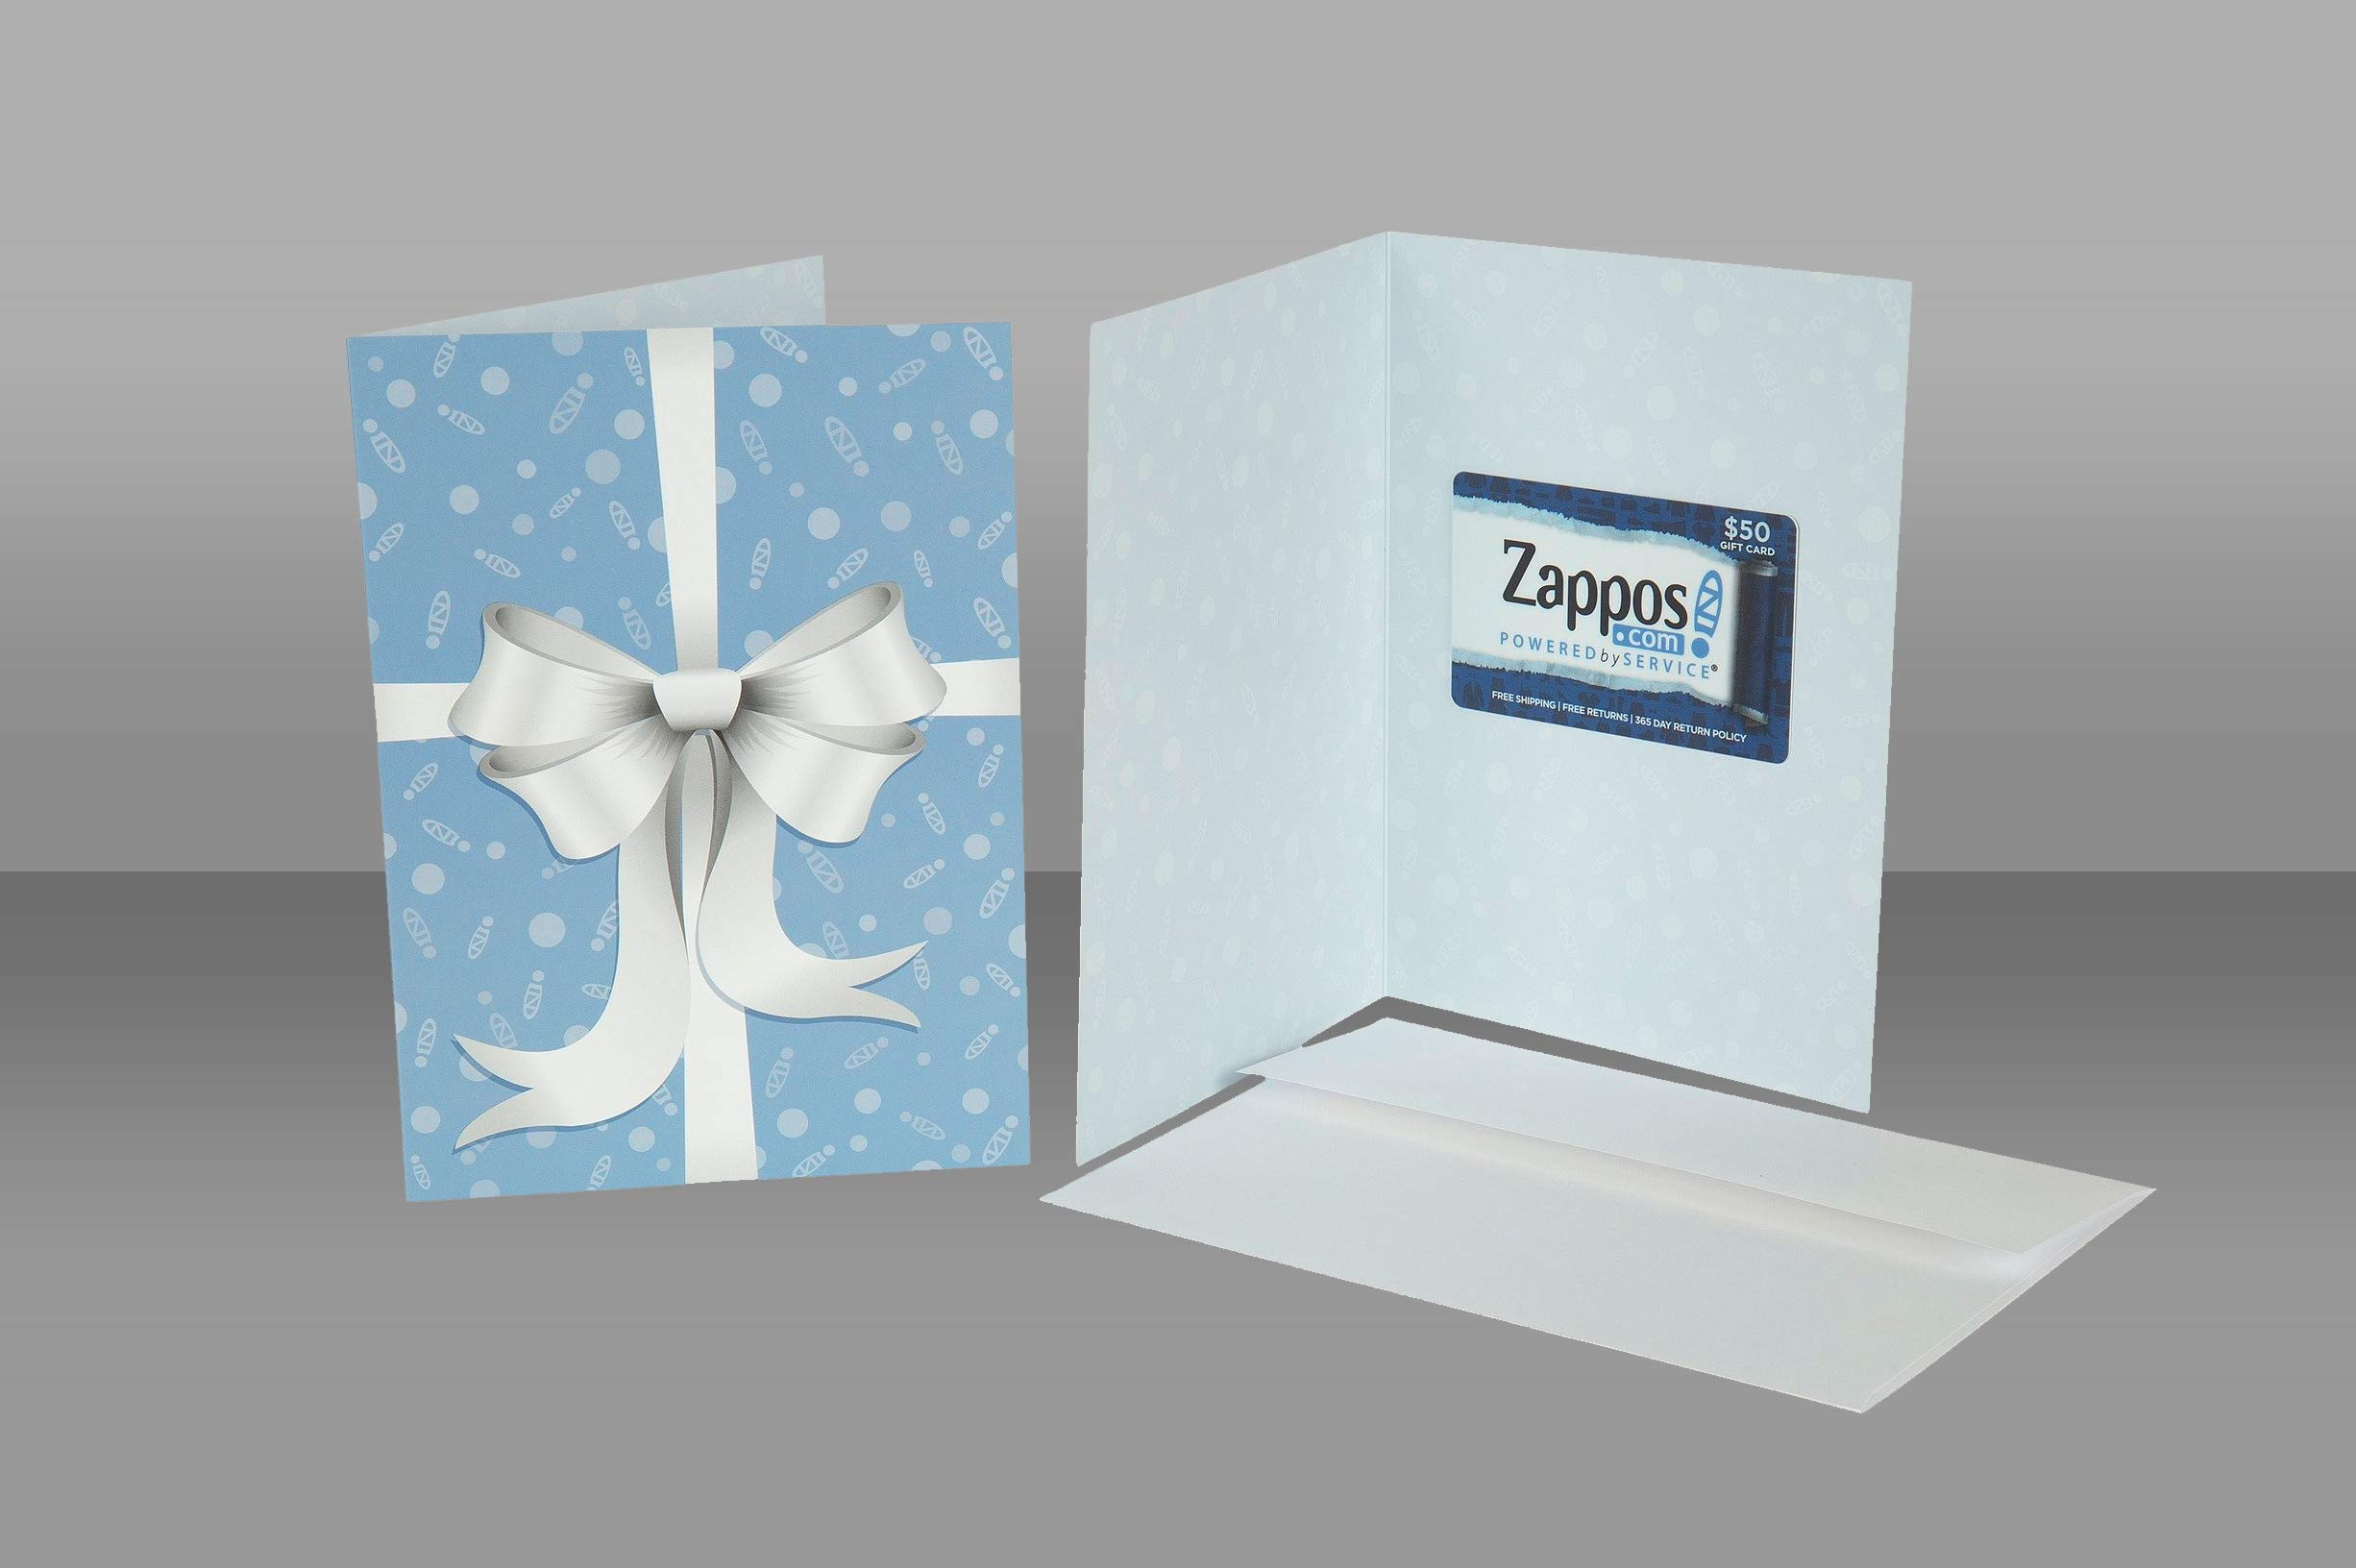 Image for a Zappos Gift Card inside of a Blue and White Ribbon Design Card